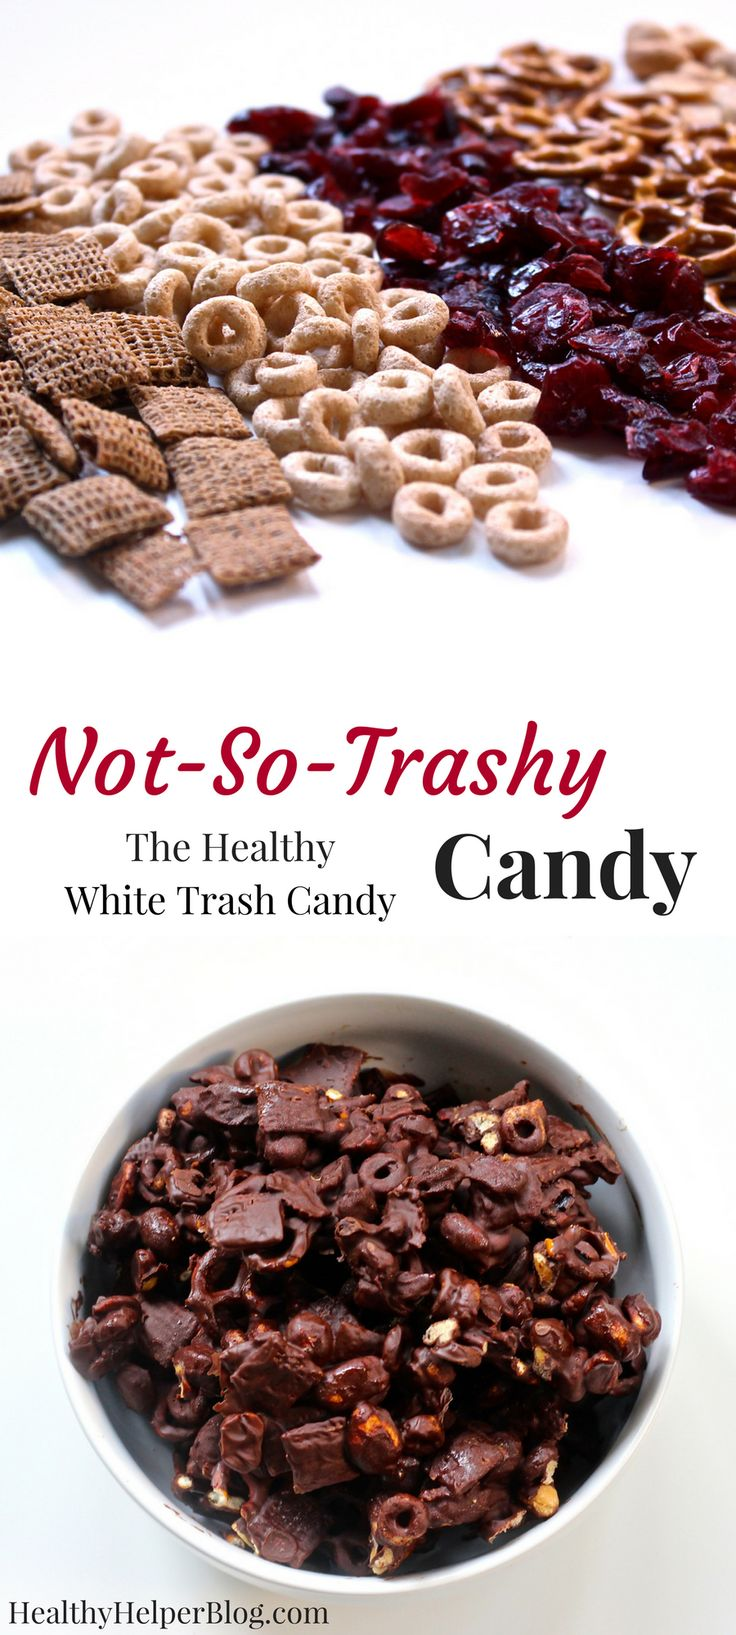 Not-So-Trashy Candy | The Healthy White Trash Candy from Healthy Helper @Healthy_Helper A healthy twist on a classic holiday candy treat! White Trash Candy gets a nutritional makeover in my version of Not-So-Trashy Candy. Dark chocolate, unsweetened dried fruits, whole grain cereals, and other superfoods make the perfect mix of sweet n' salty flavor while being better for you than the original! This is a holiday snack you can feel good about making AND eating.